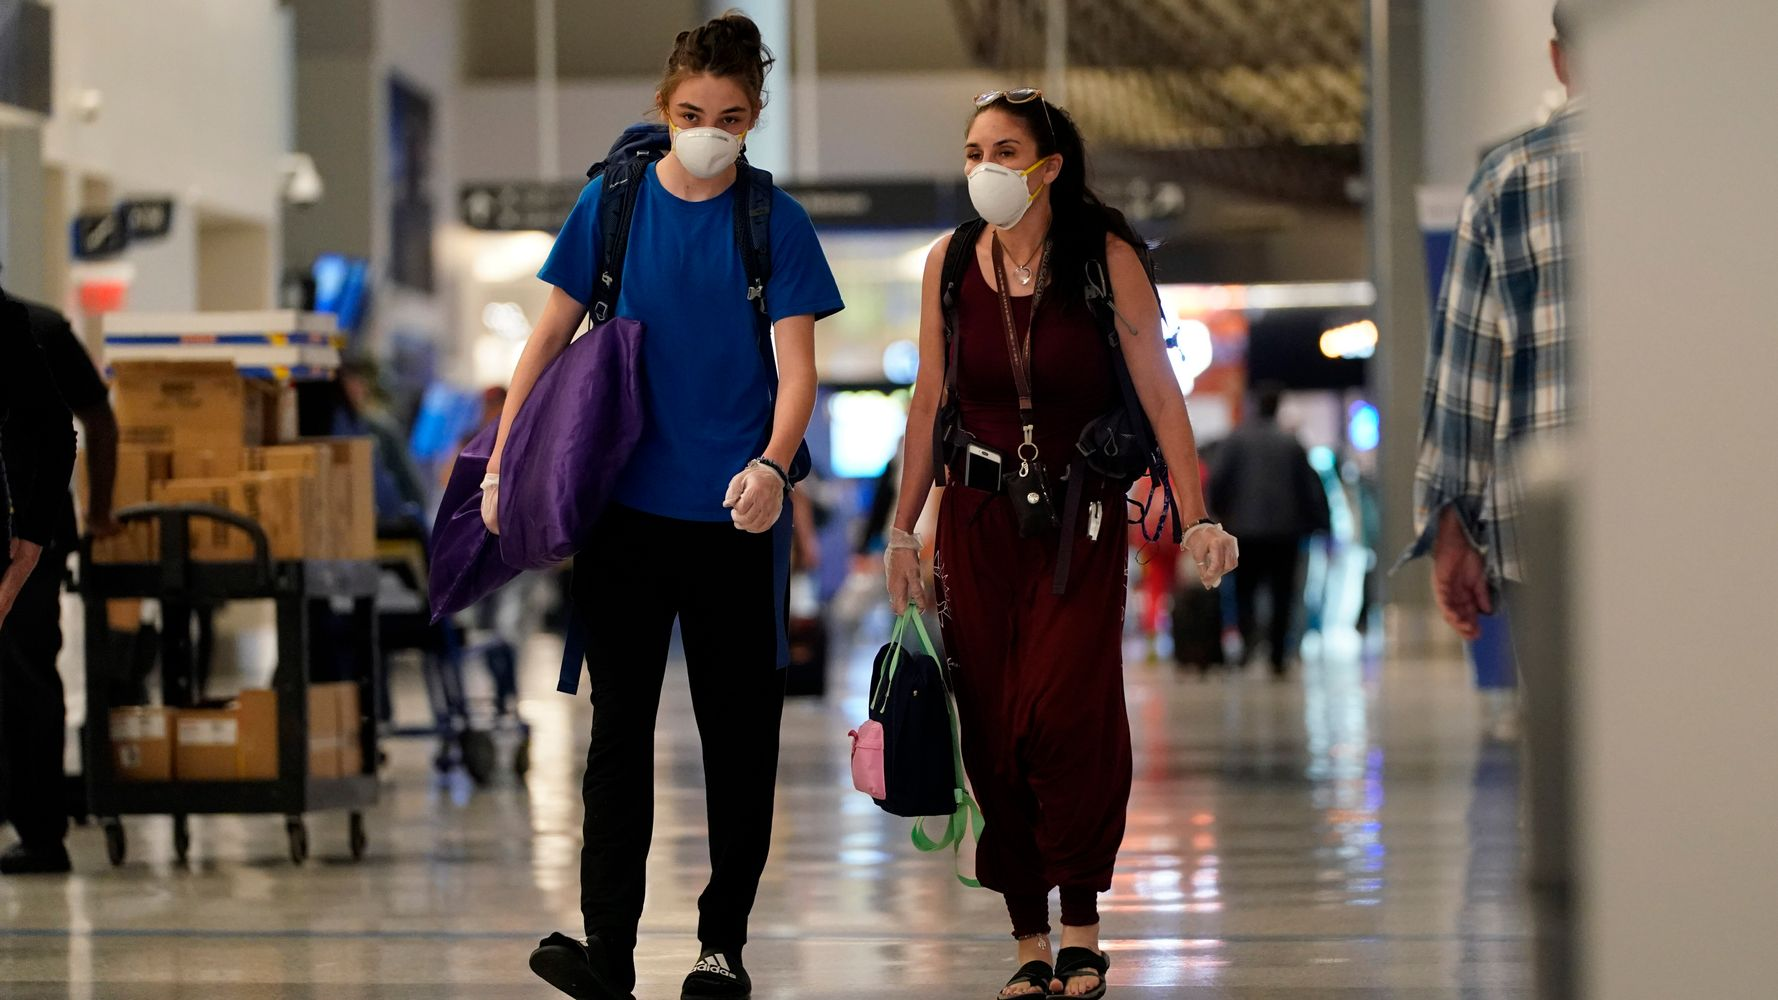 People At Risk Of Coronavirus Are Urging Others To Stay Home. Here's Why.